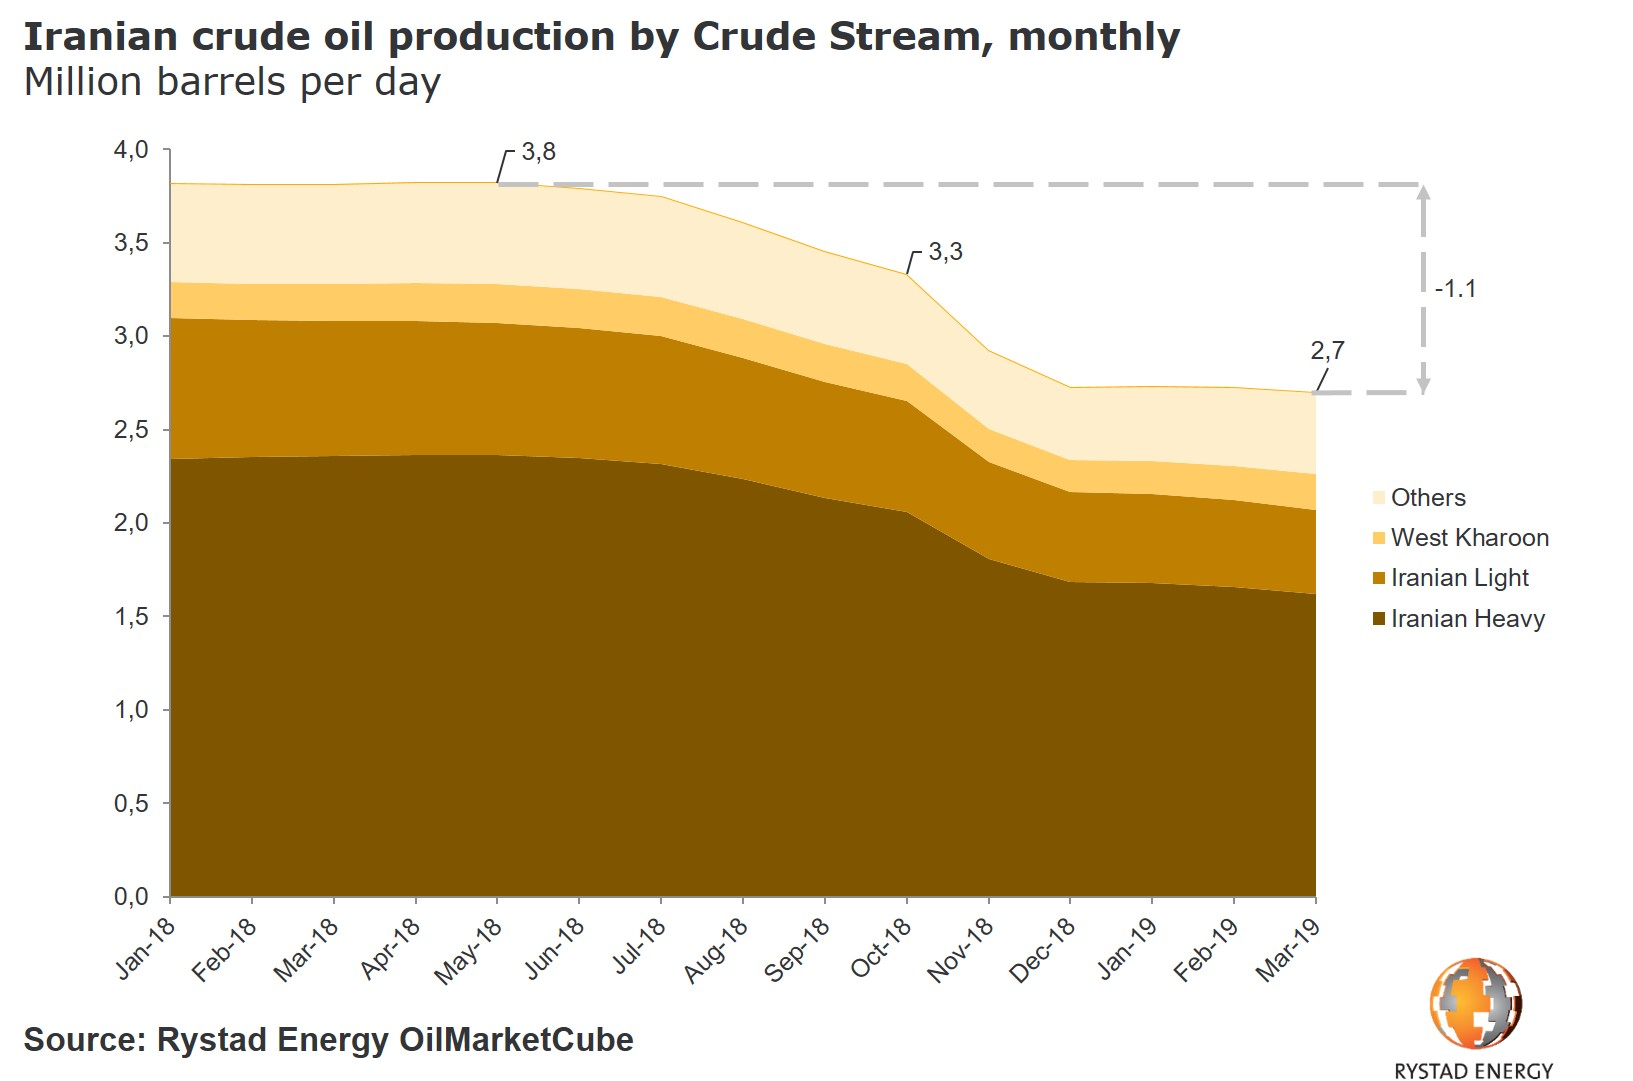 20190424_PR Iran Sanctions Waivers Iranian crude production by crude stream.jpg